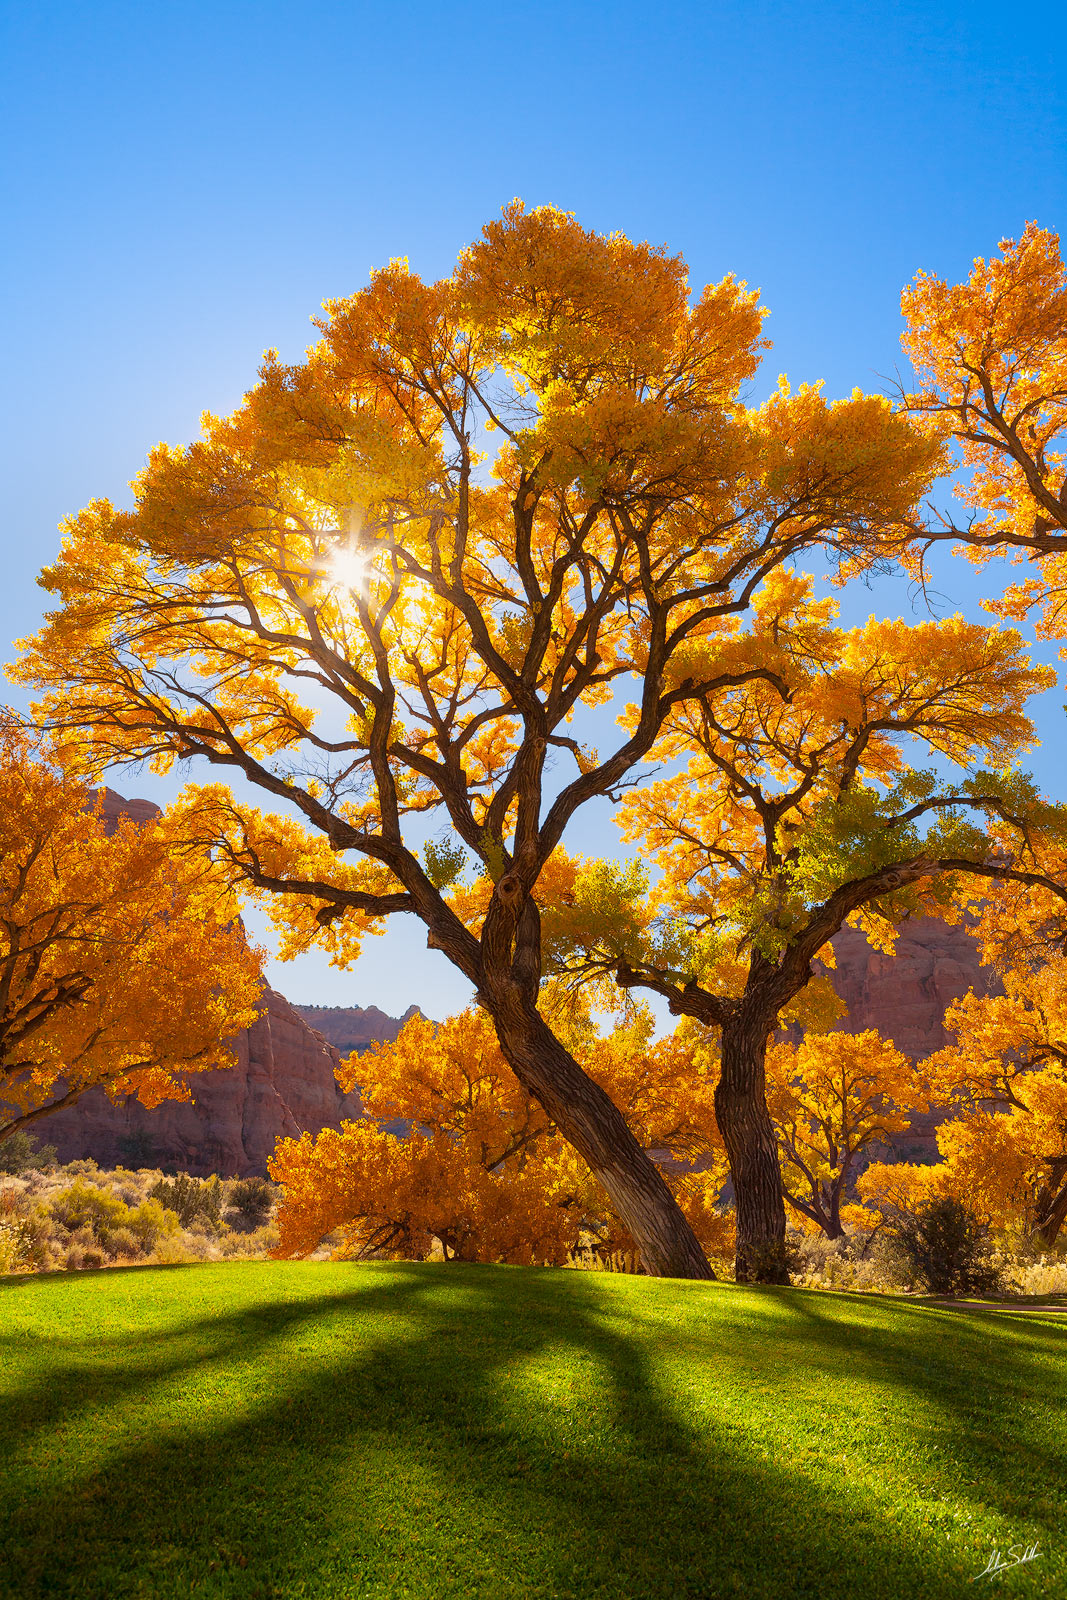 Autumn, Cottonwood, Fall Color, Green, Happy, Kane Springs, Moab, Peaceful, Sun, Tree, UT, Utah, Yellow, photo